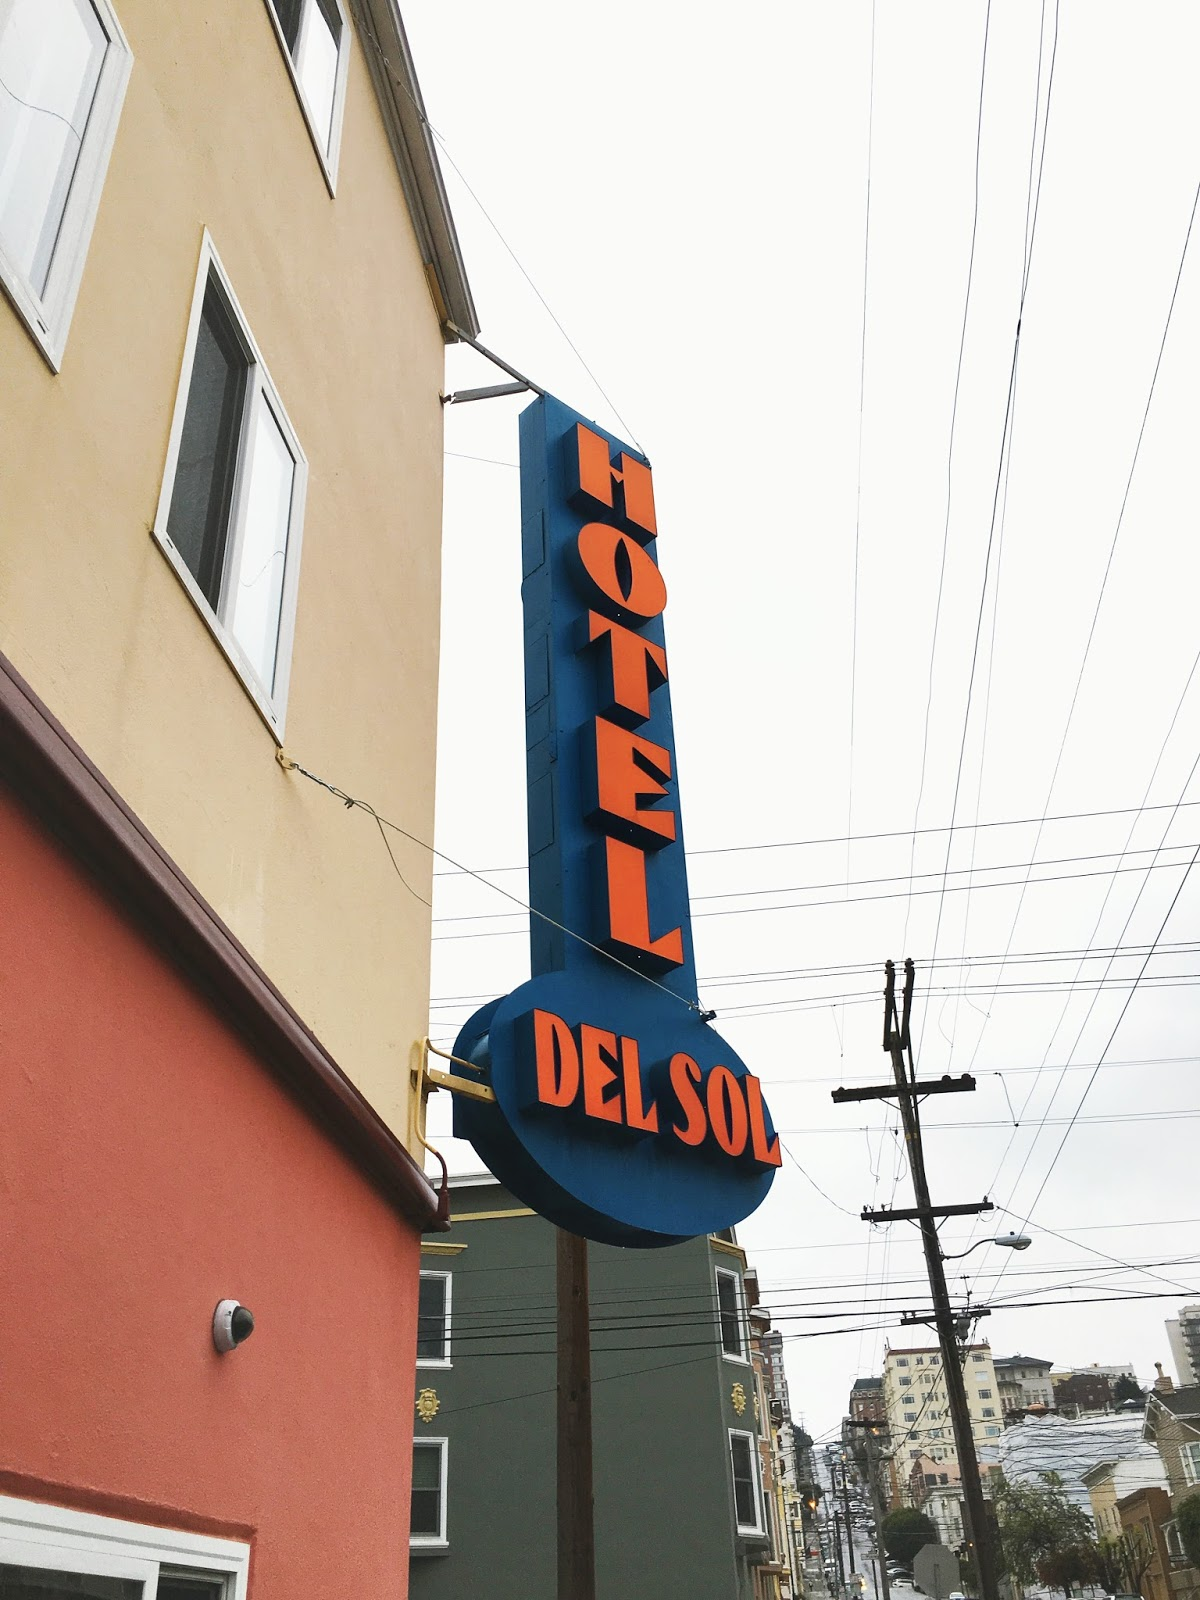 Hotel Del Sol is a family friendly hotel